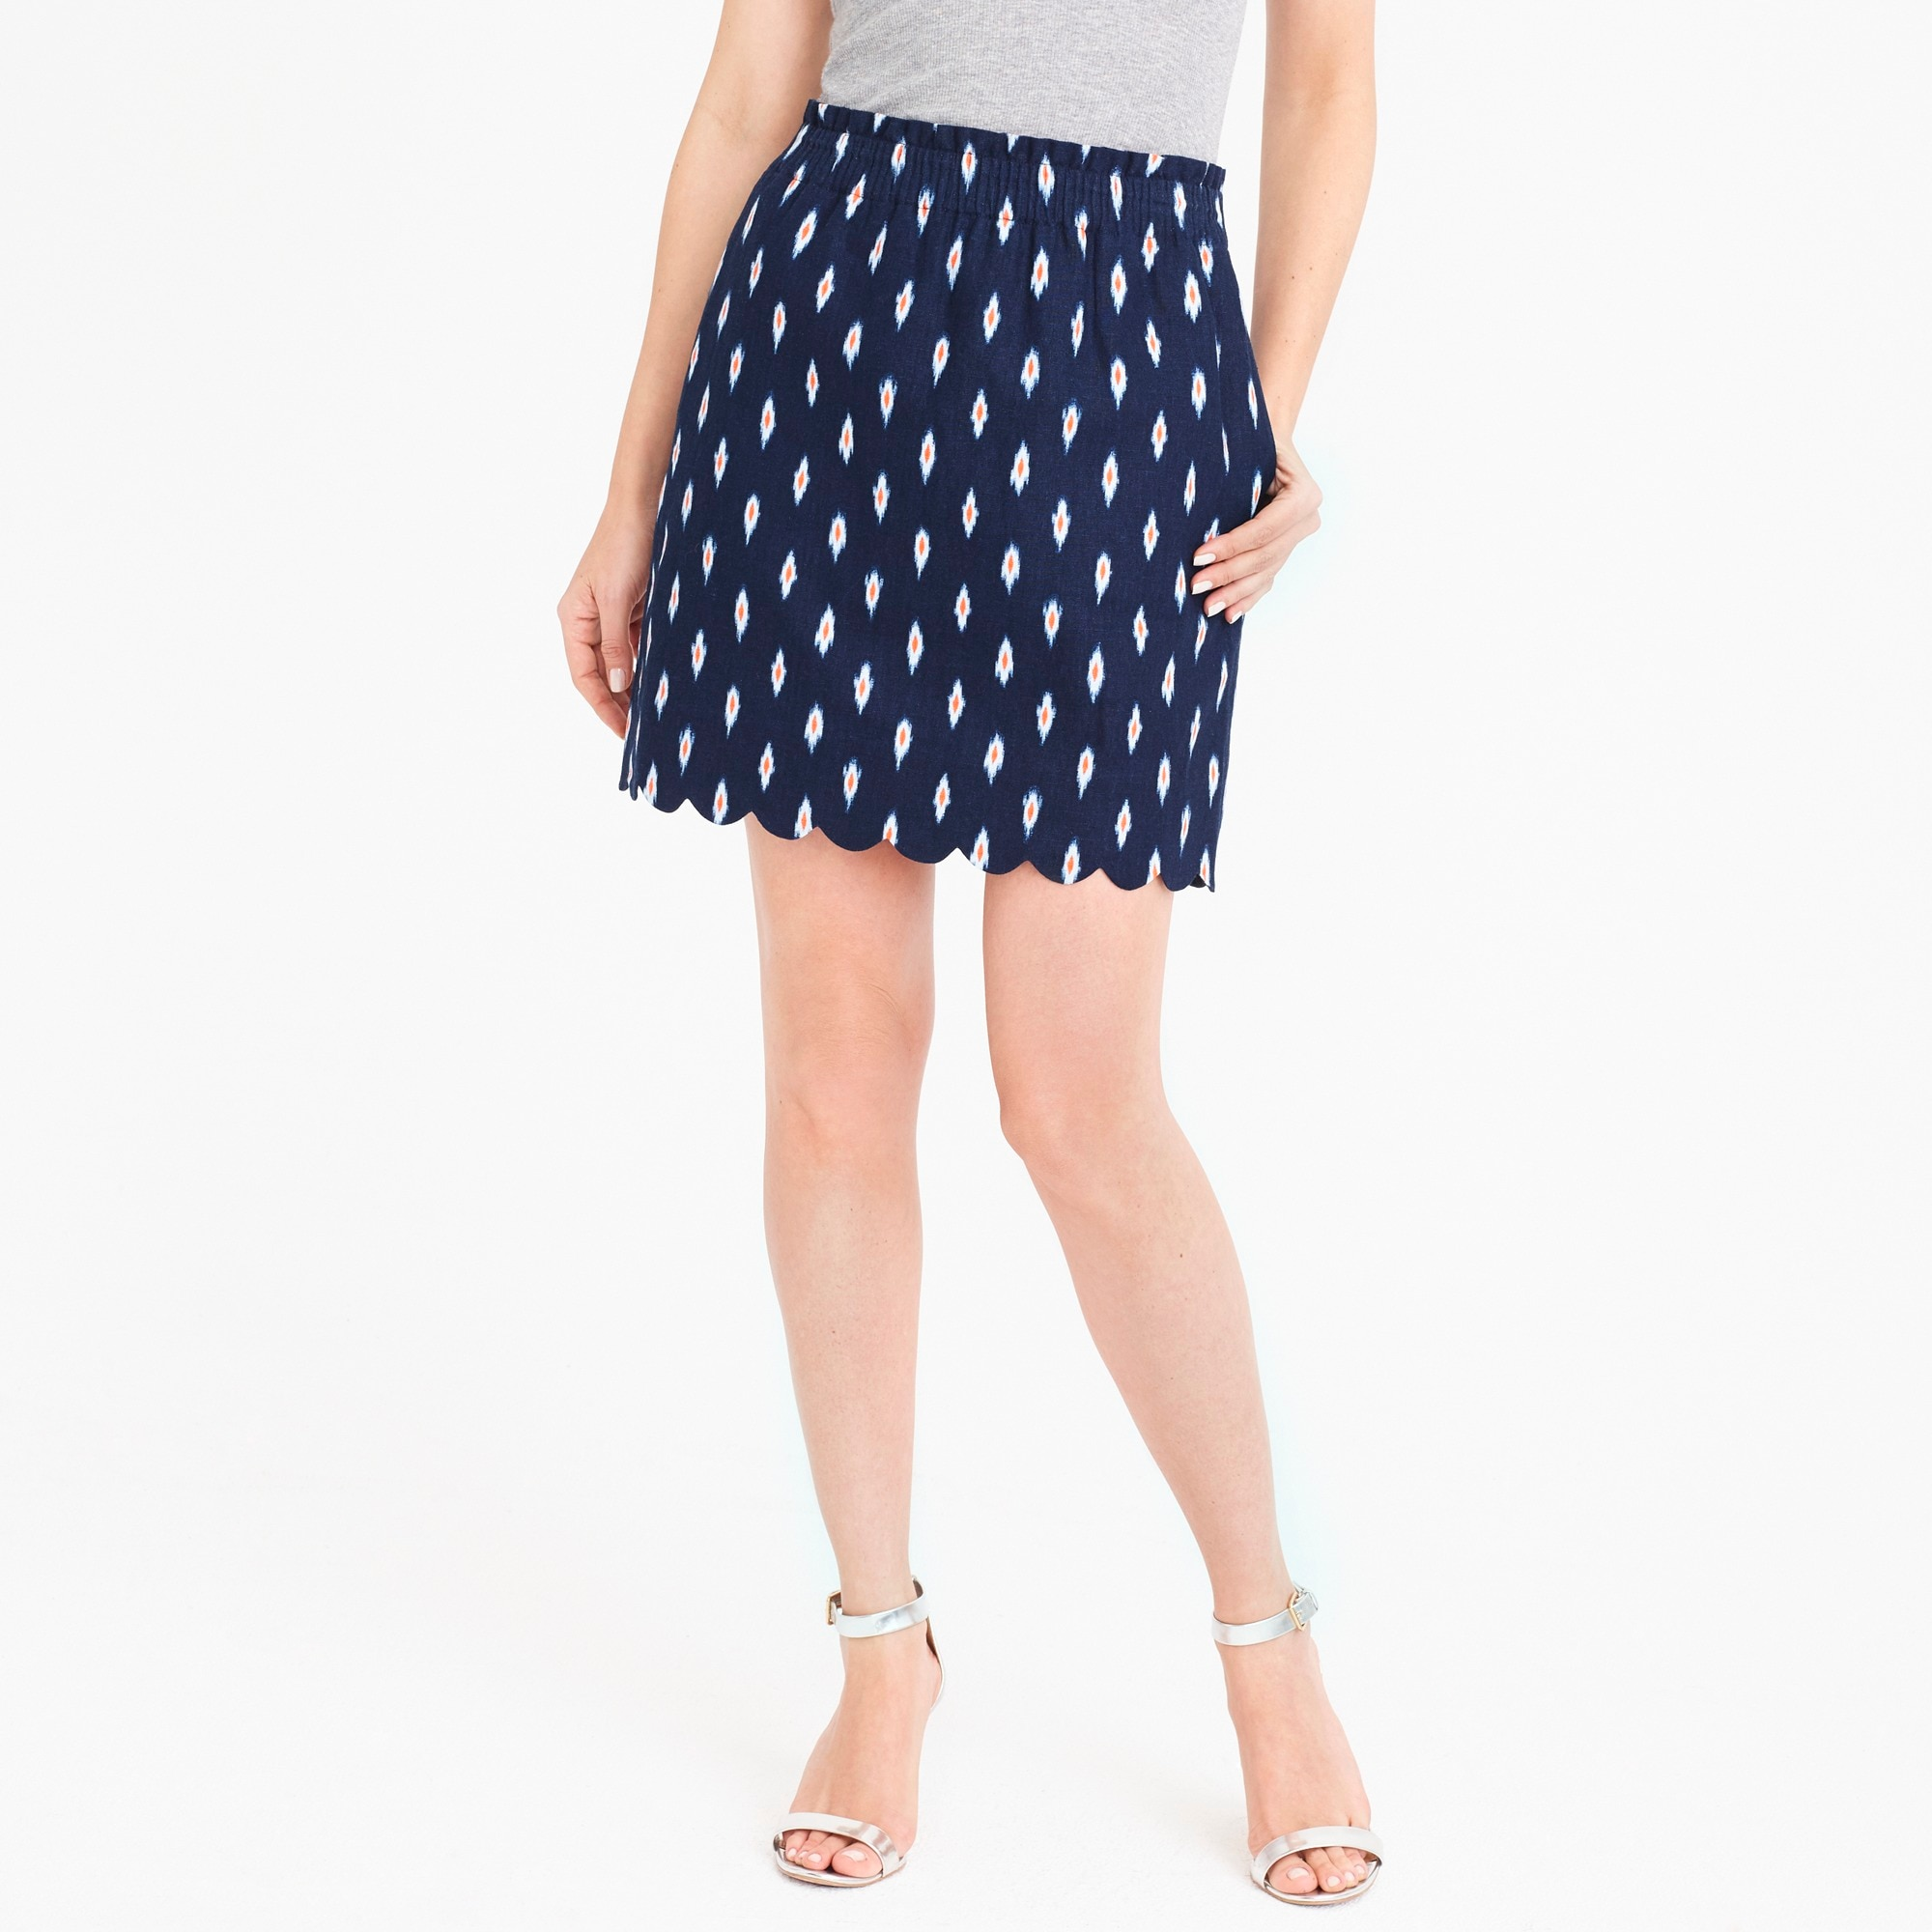 printed scalloped sidewalk skirt : factorywomen mini